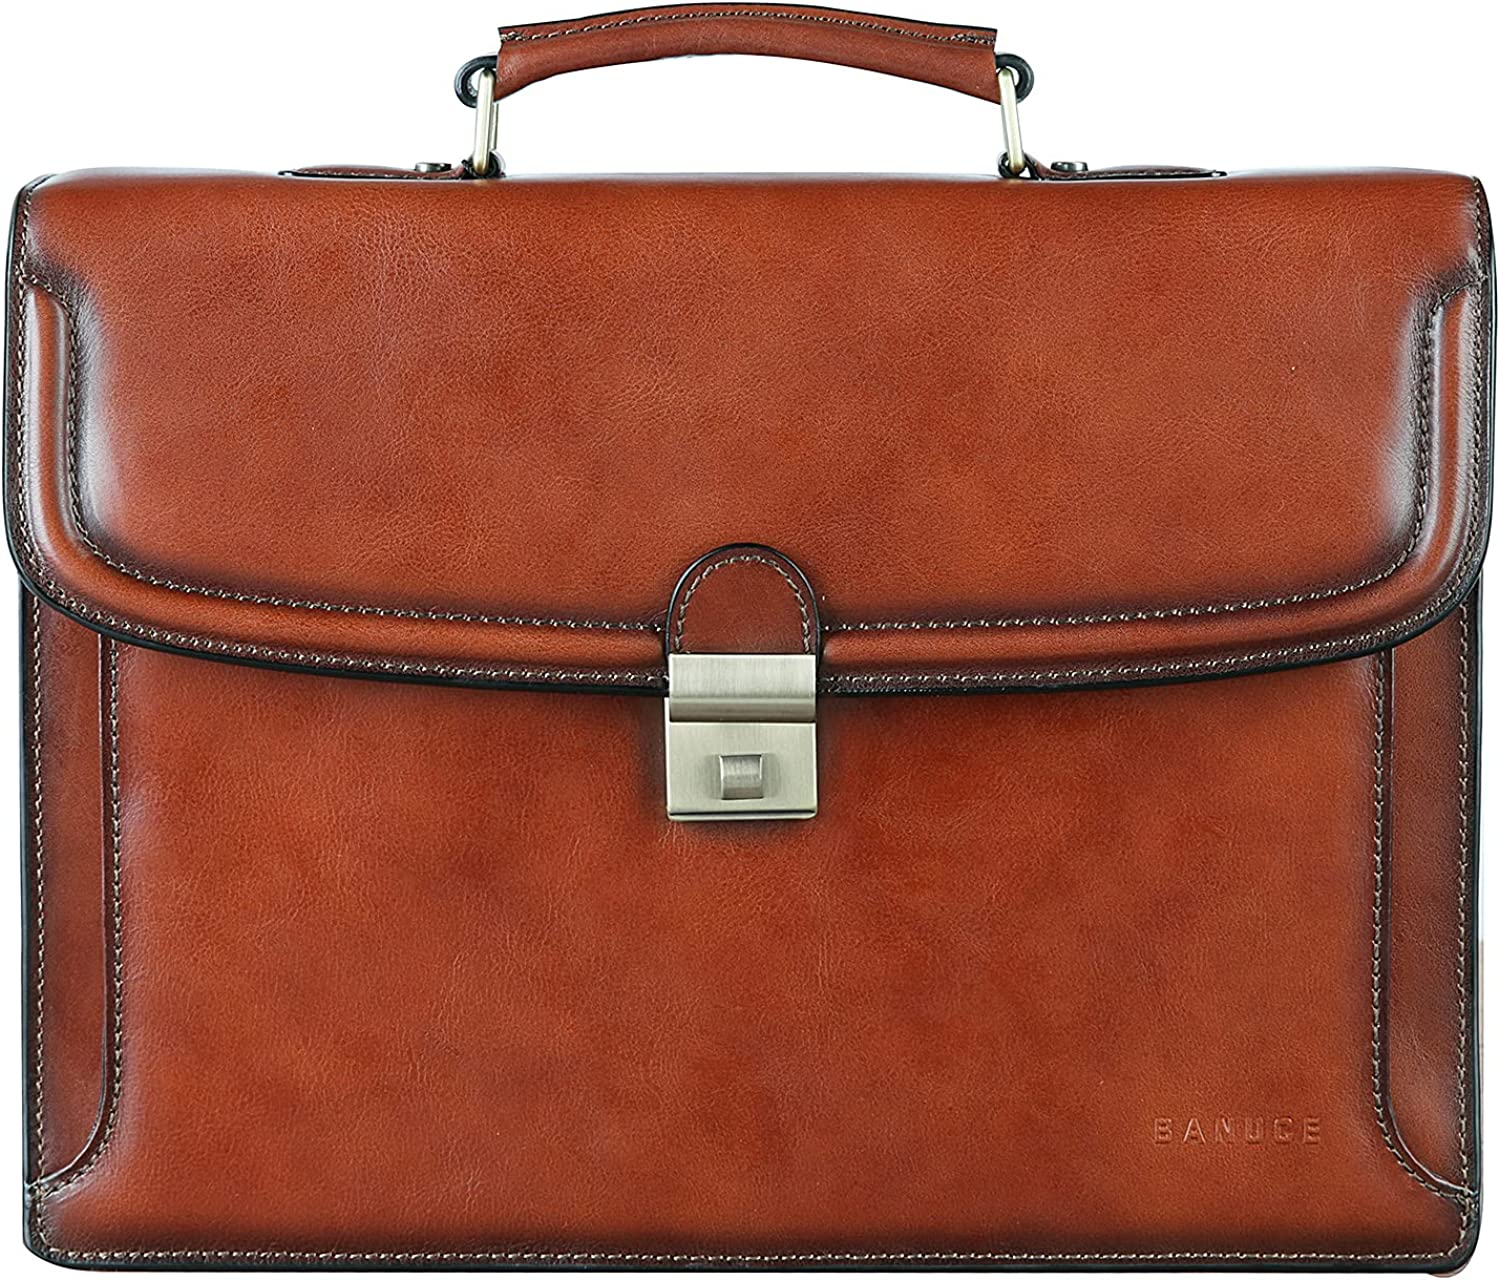 Banuce Vintage Full Grains Italian Leather Briefcase for Men Attache Case with Lock 14 Inch Laptop Bags Business Tote Work Bag